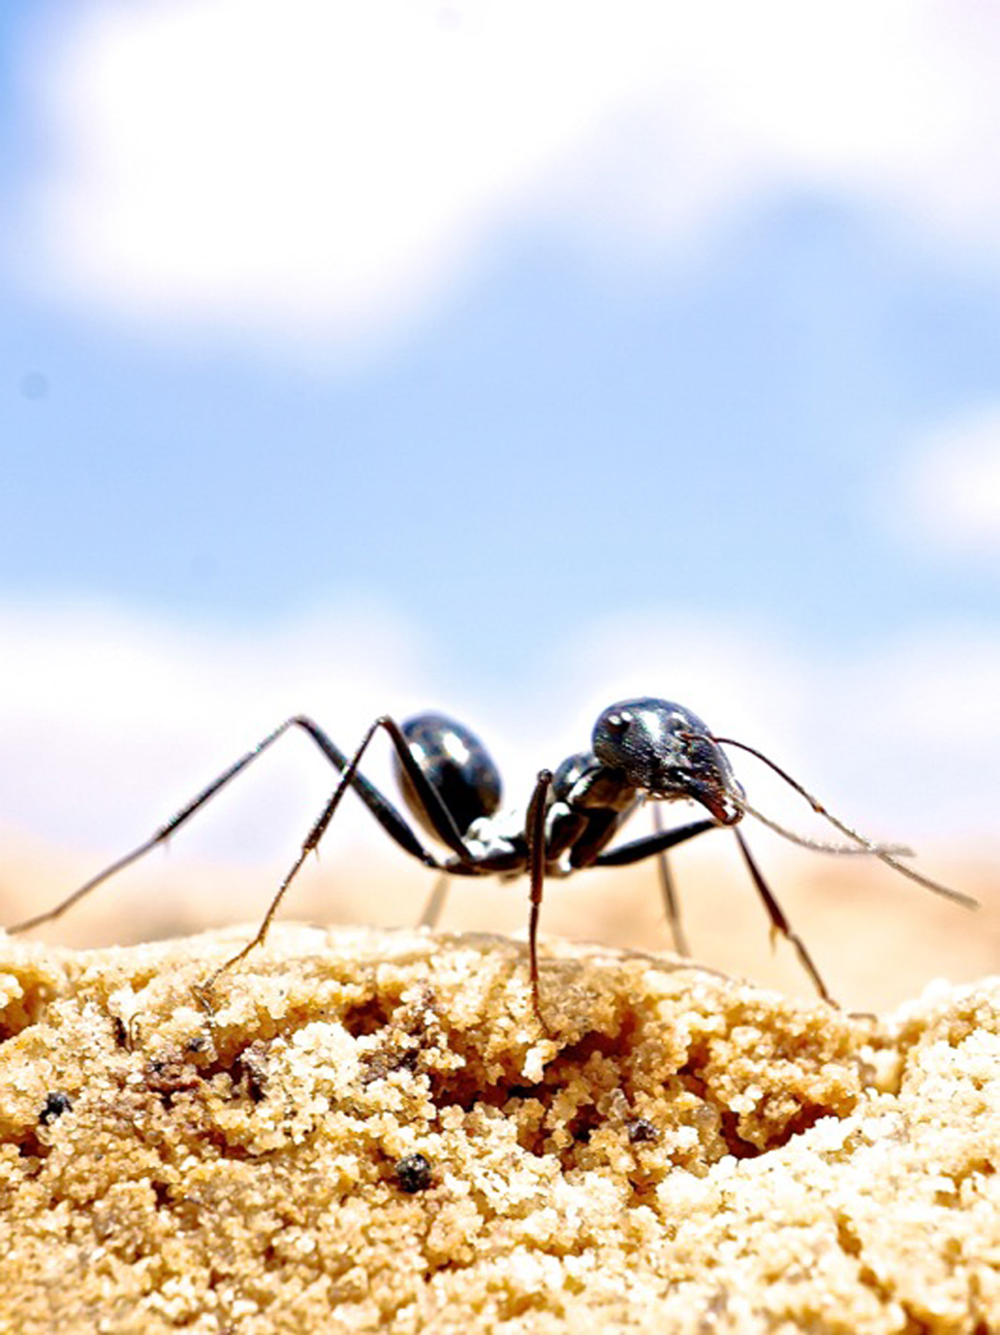 While returning to their nest, desert ants can distinguish between ambiguous and unambiguous landmarks, according to new research.